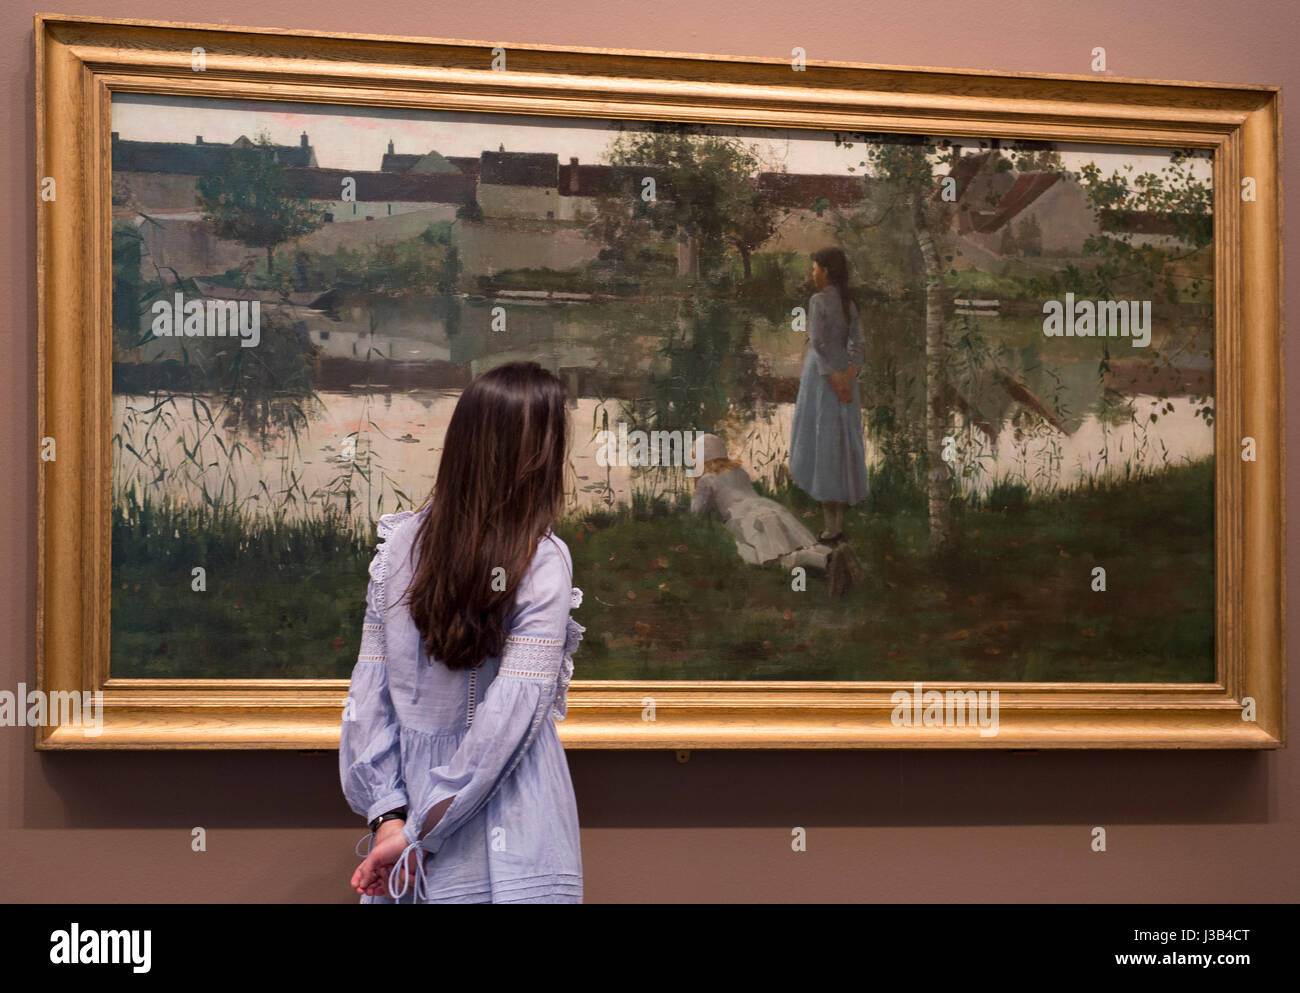 Tate Britain, London, UK. 5th May, 2017. The new acquisition Le Passeur (The Ferry) by British impressionist William - Stock Image